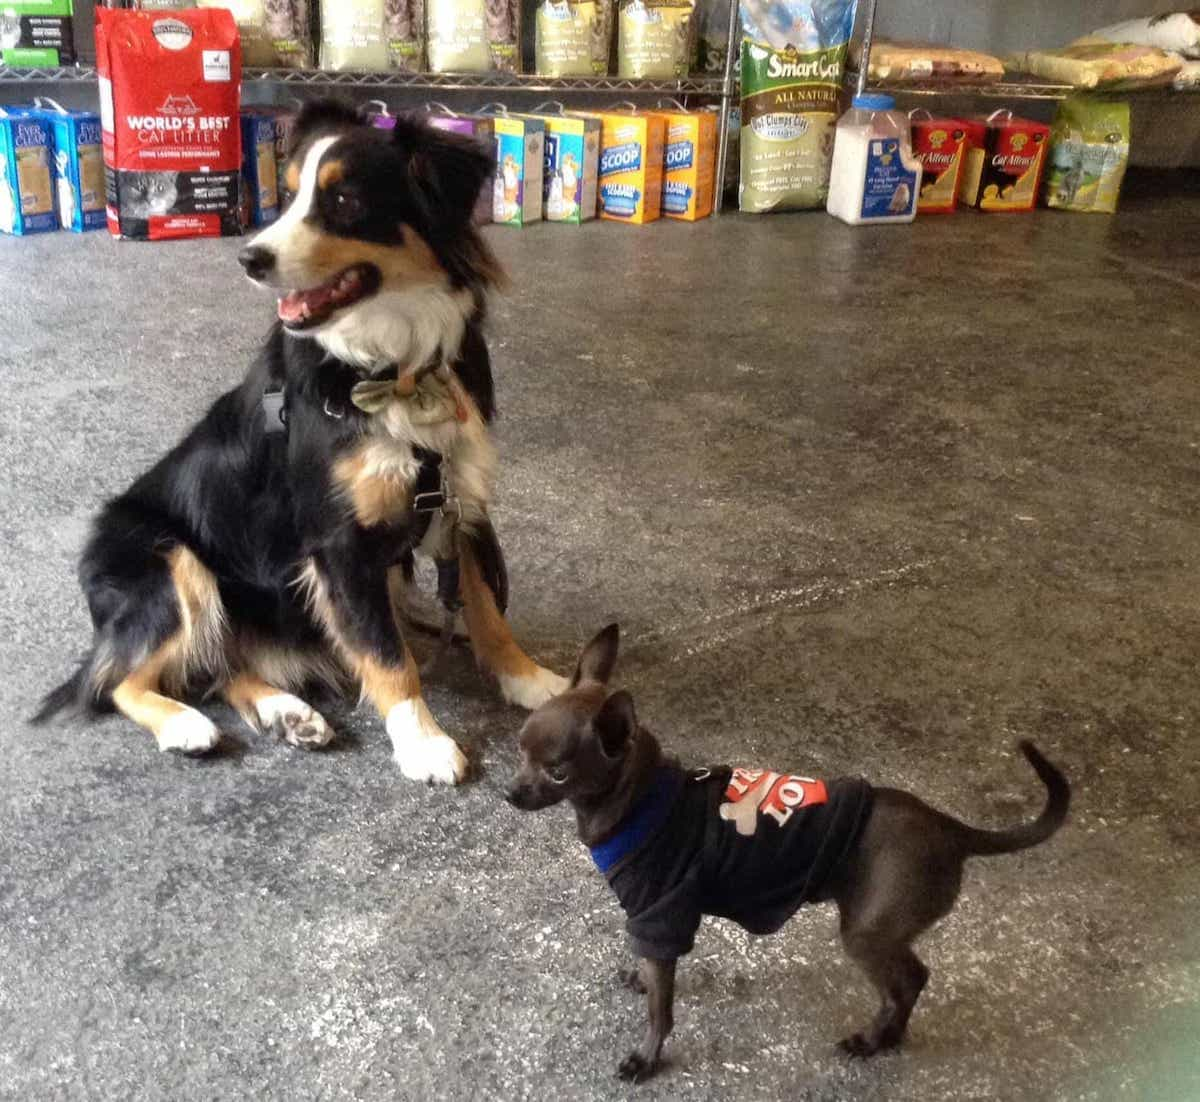 Two dogs, one little one big, in a pet store surrounded by dog and cat food